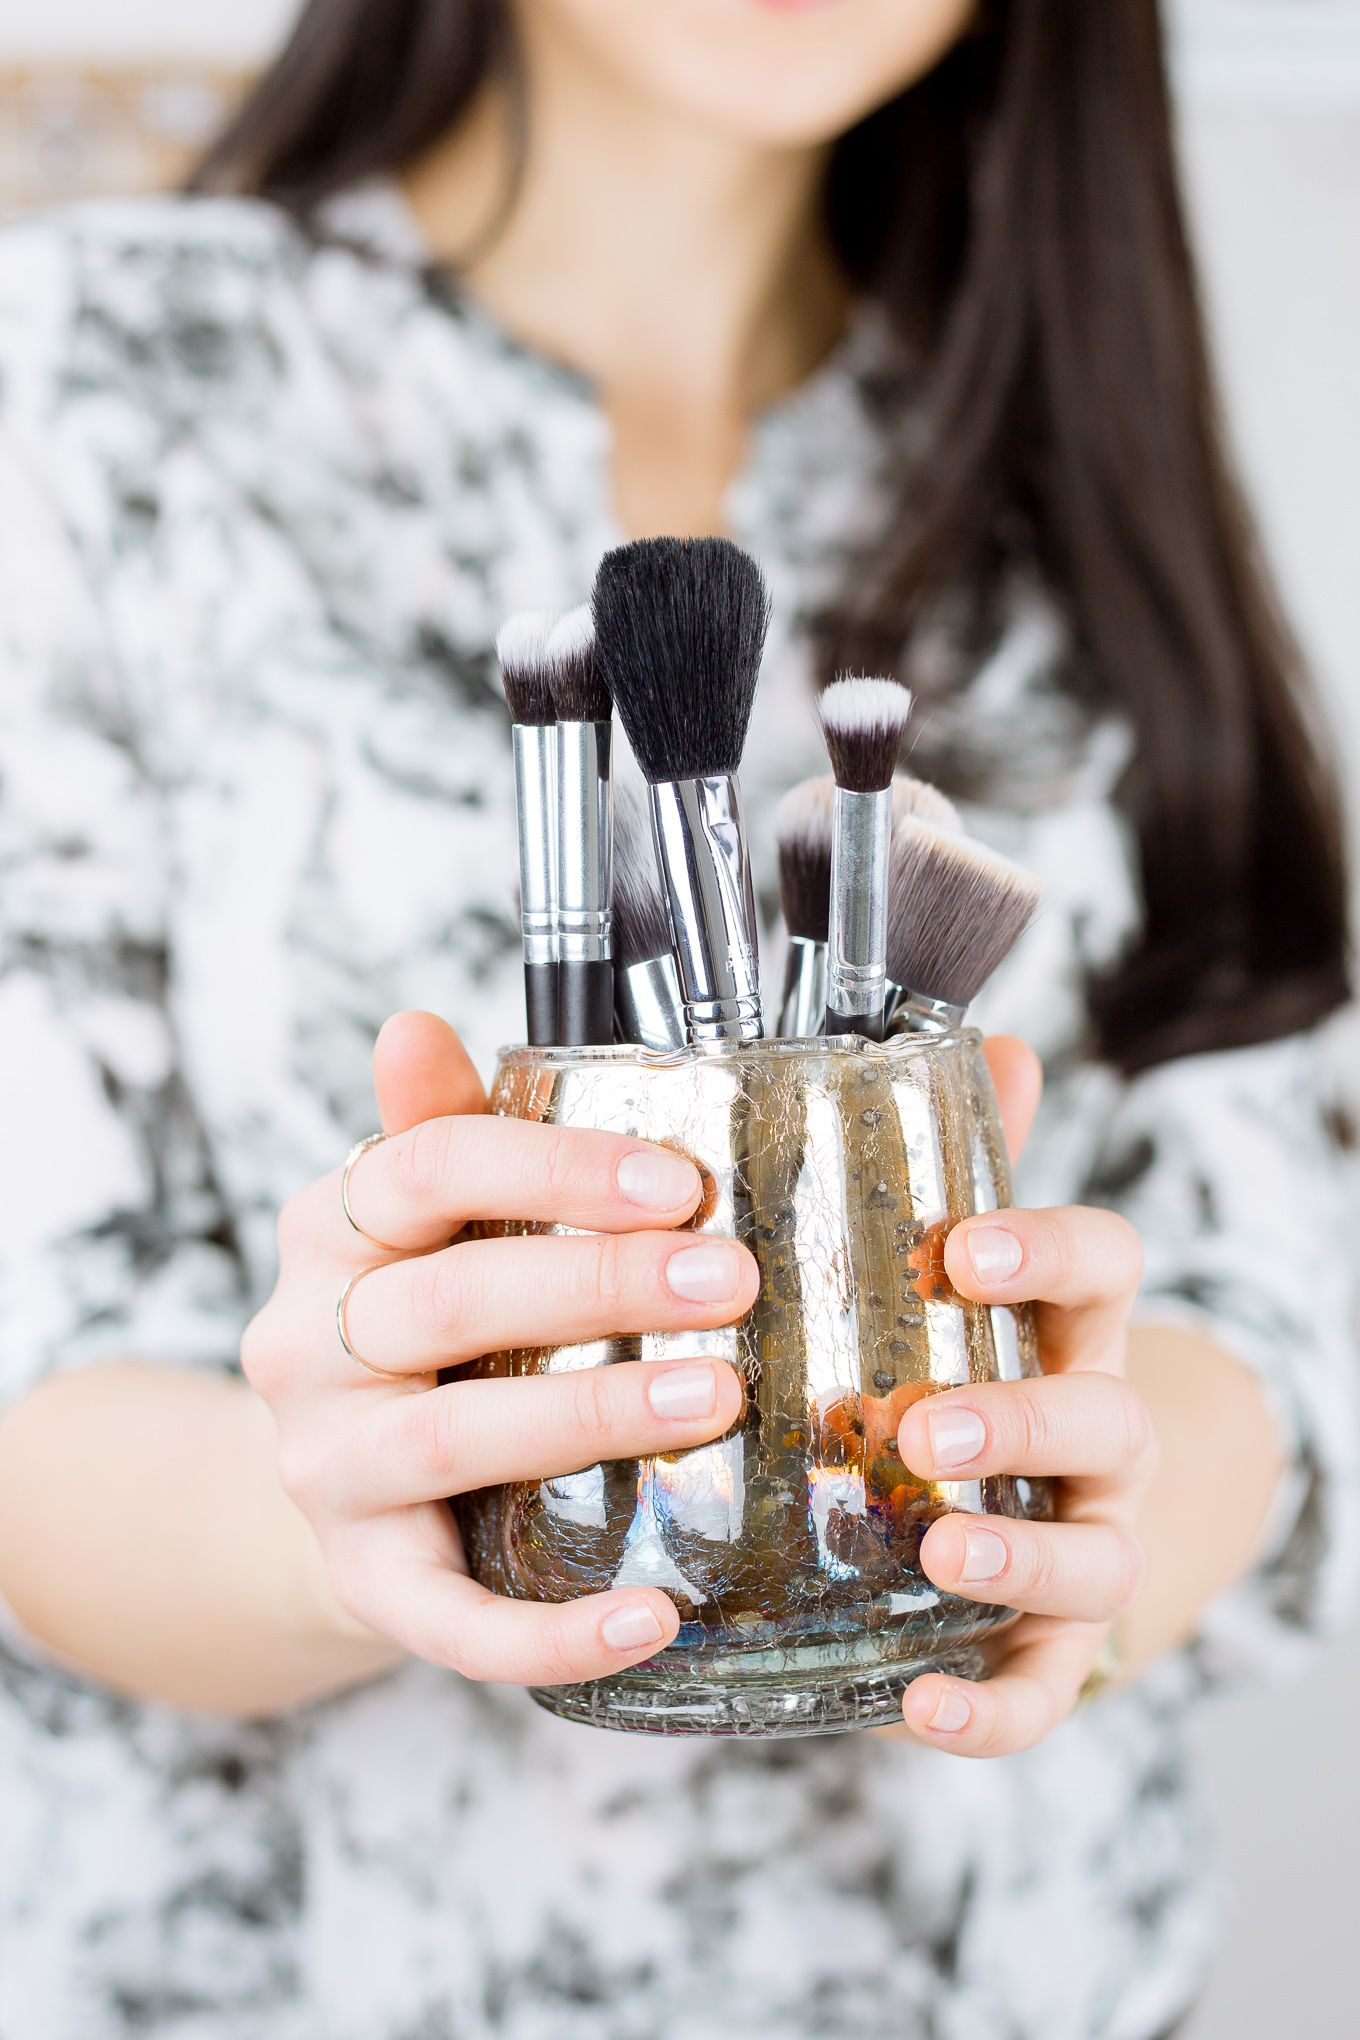 How To Clean Makeup Brushes With Baby Shampoo (With images